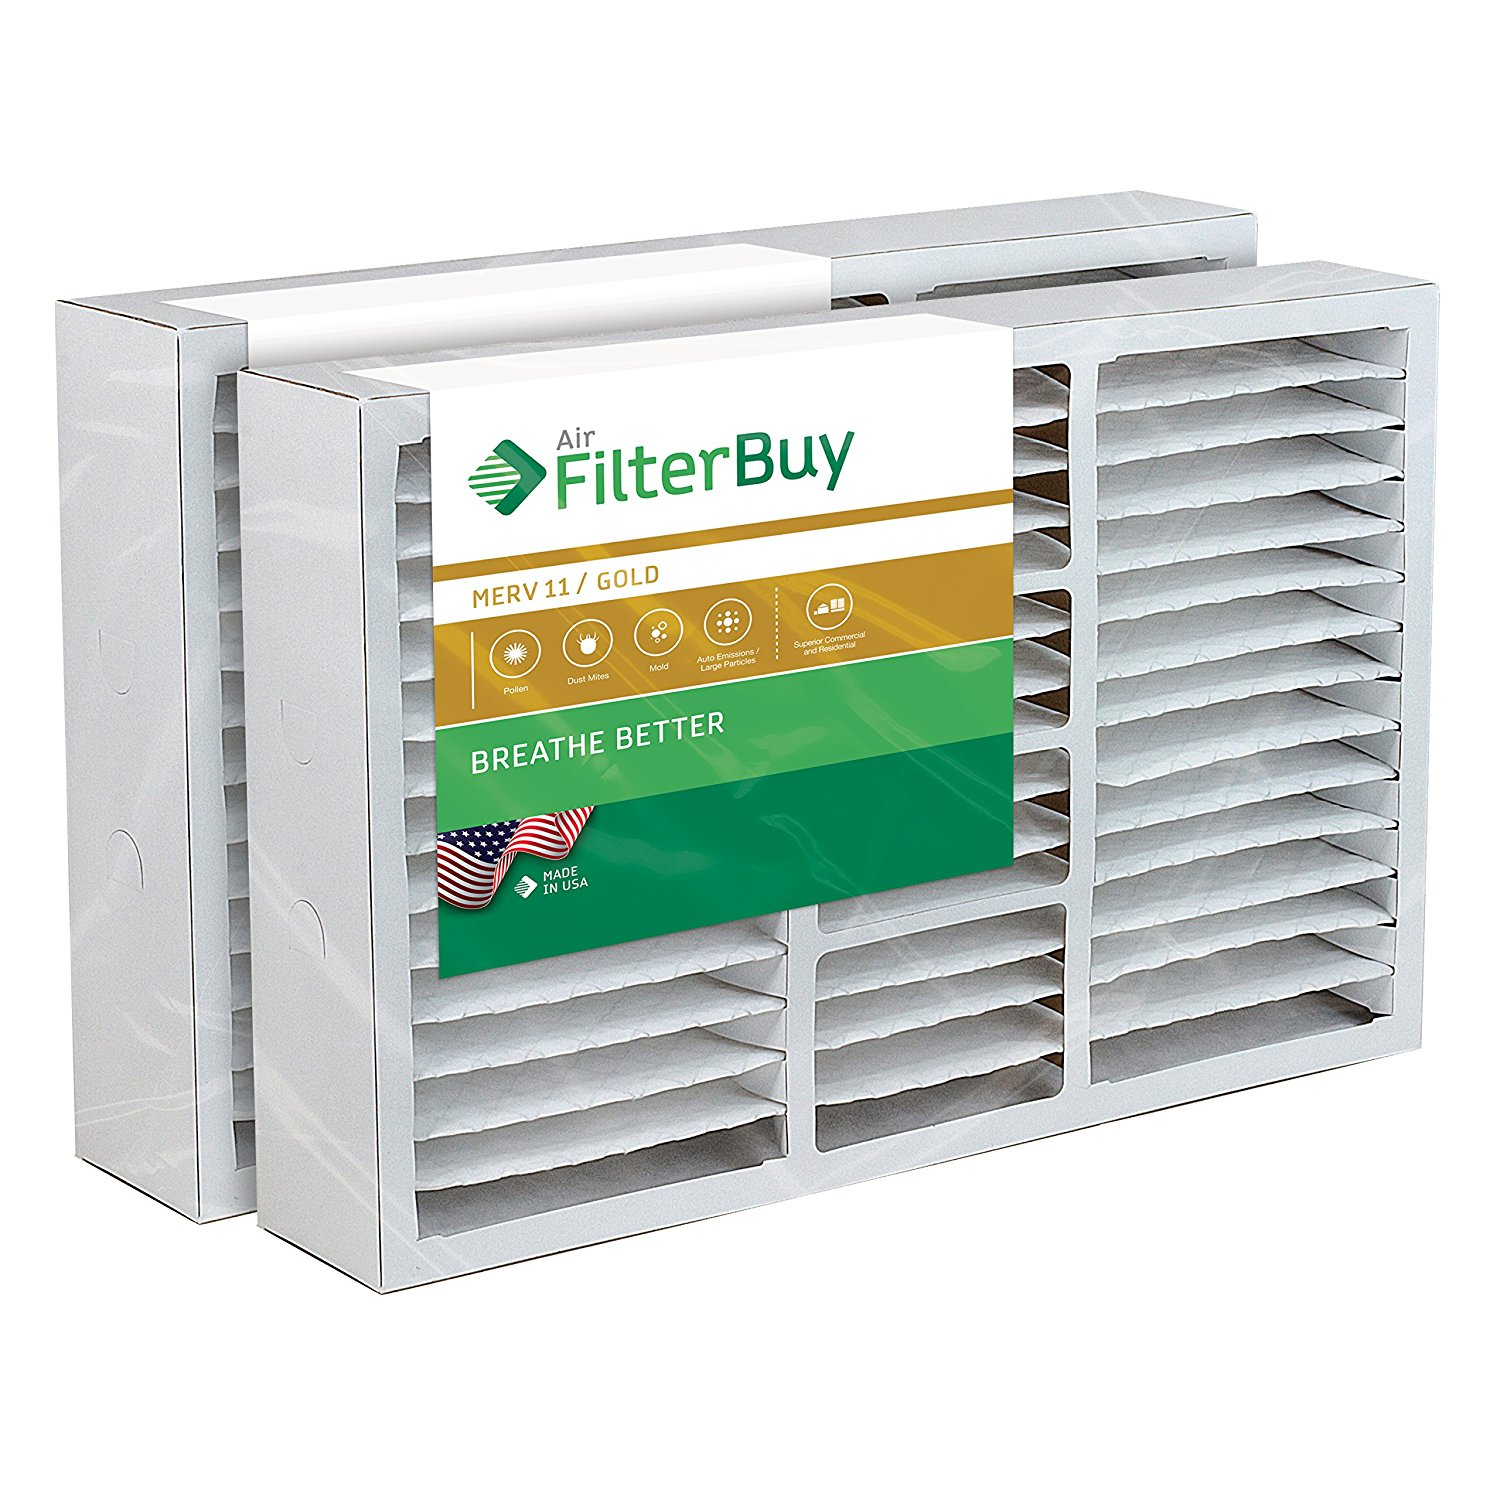 FilterBuy 16x25x5 AirKontrol Aftermarket Replacement AC Furnace Air Filters - AFB Gold MERV 11 - Pack of 2 Filters. Designed to replace Dust Patroler DPP51624.